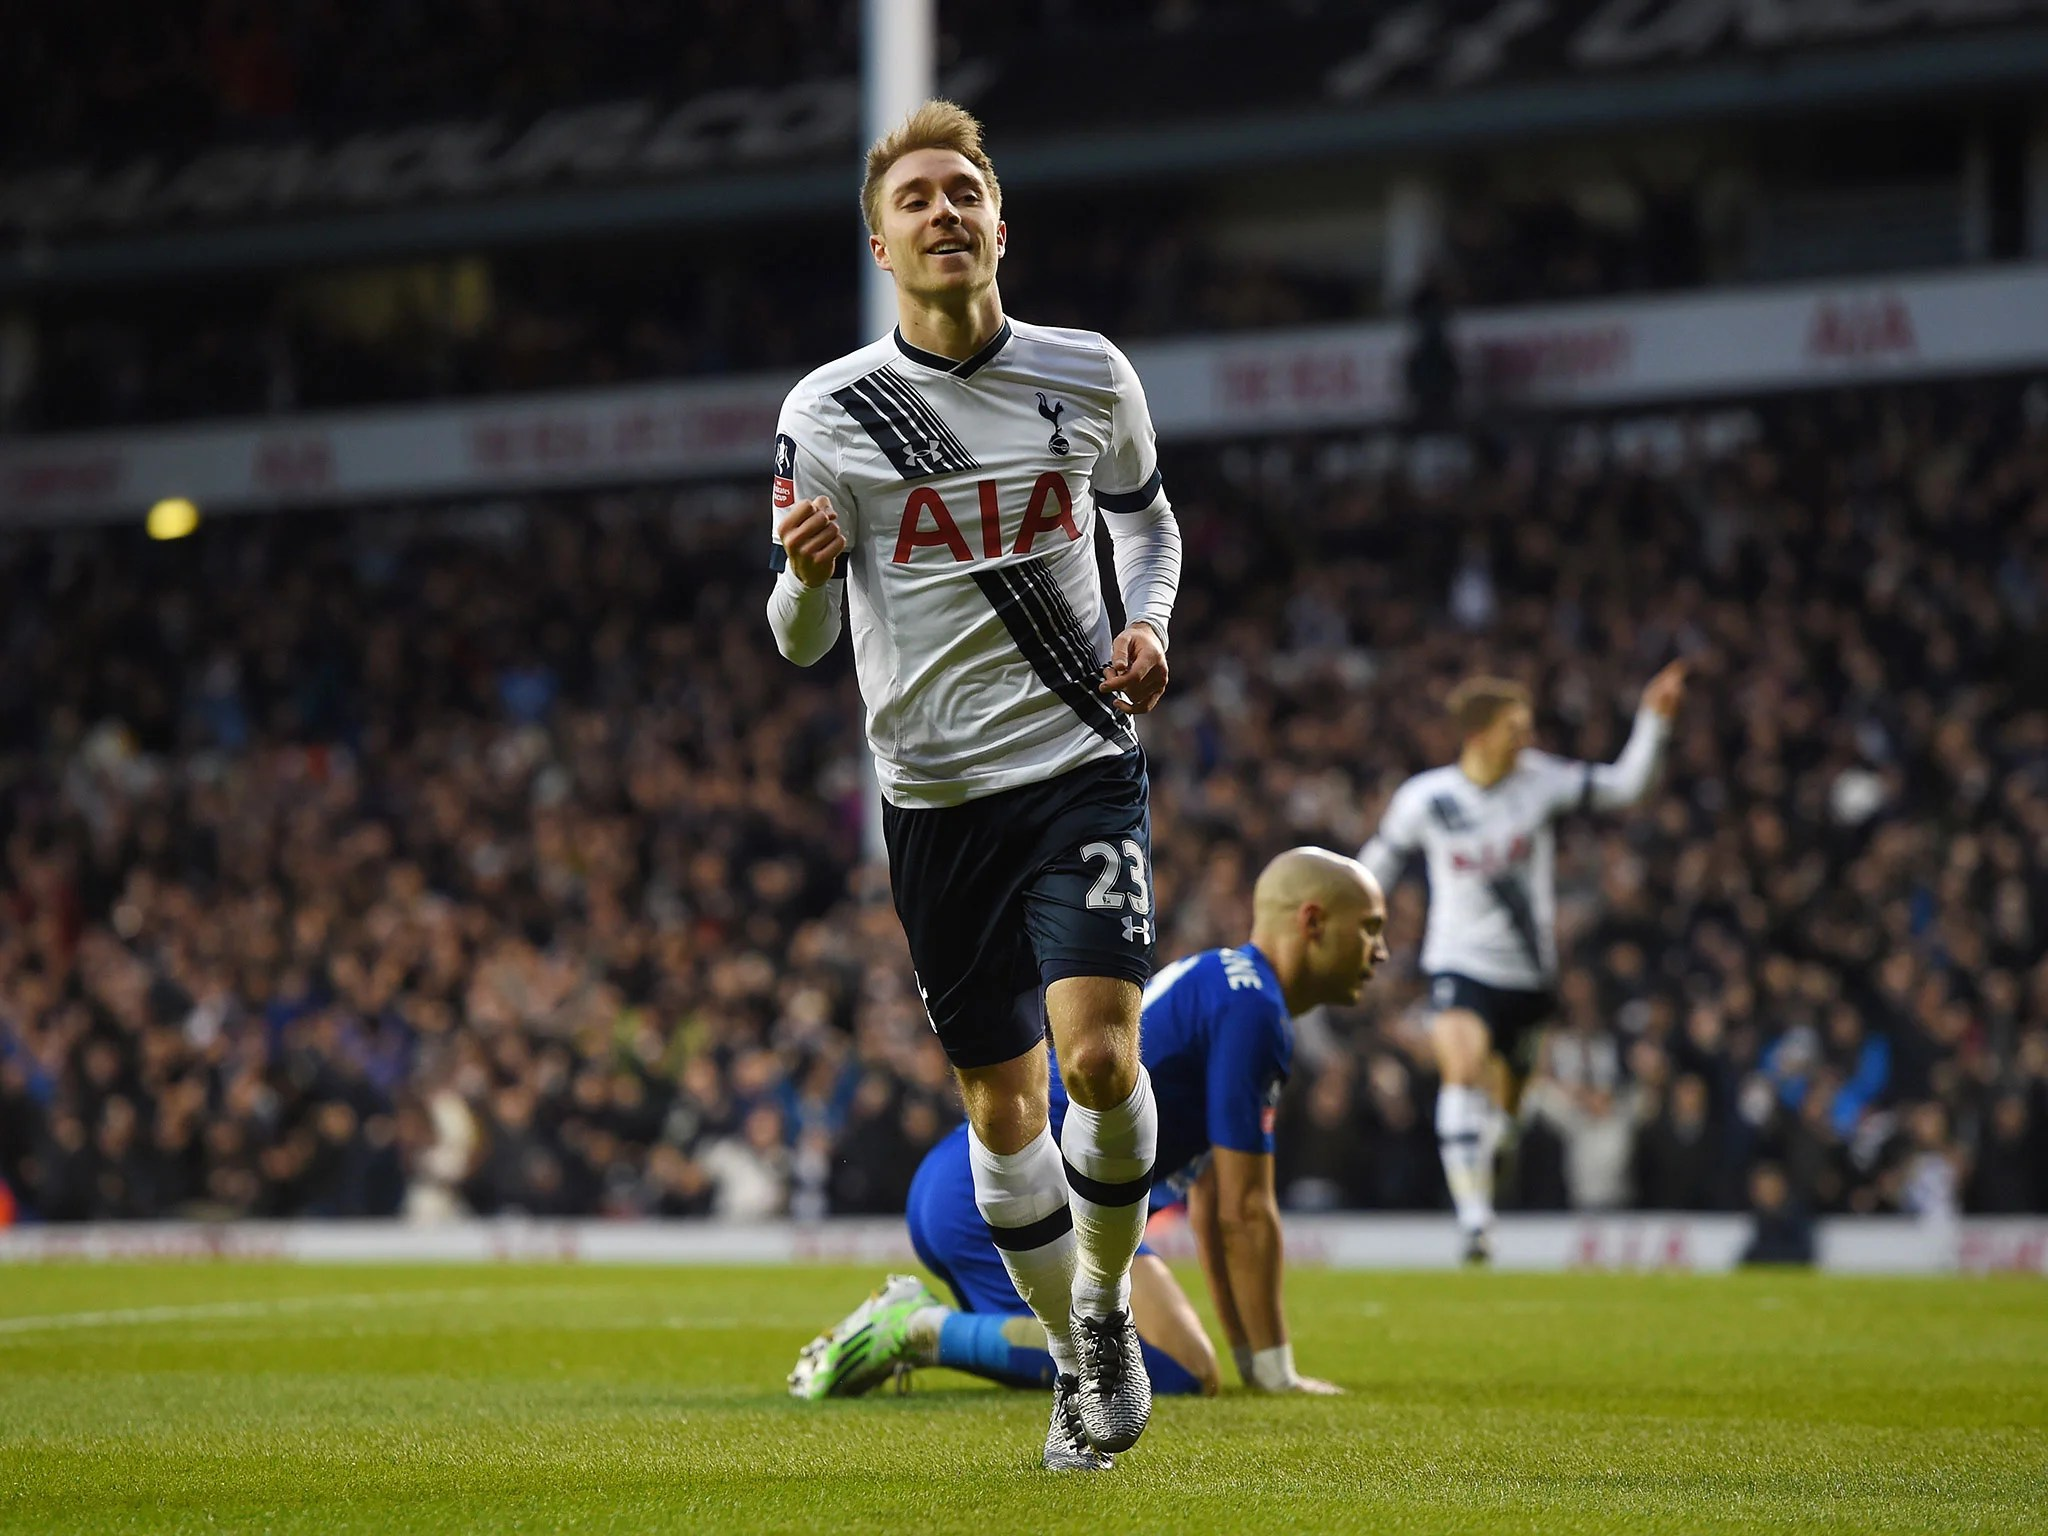 Tottenham vs Leicester City player ratings: Was Christian